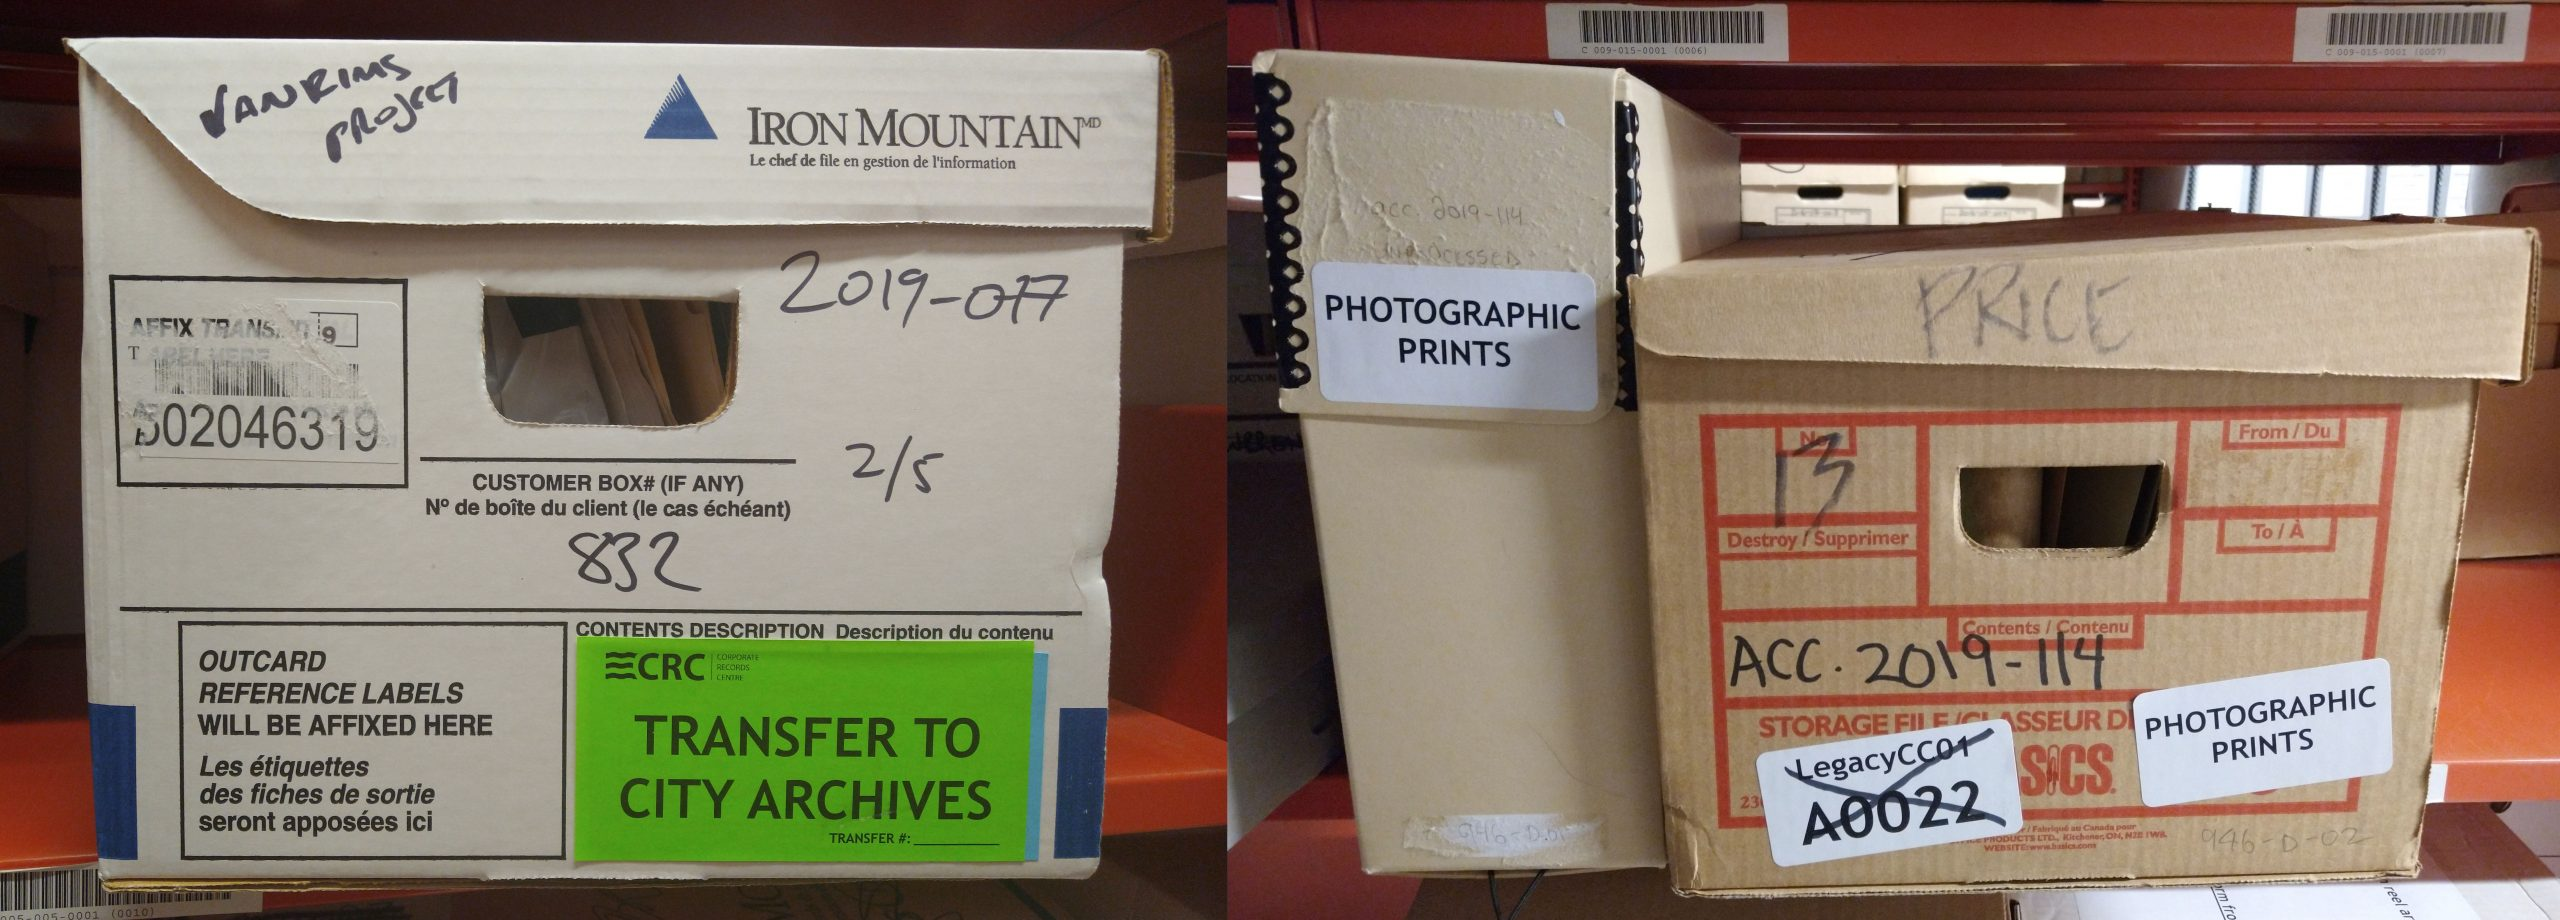 New records from 2019: a box of transferred City records (left) and two boxes of records privately donated (right). Photo by Kira Baker